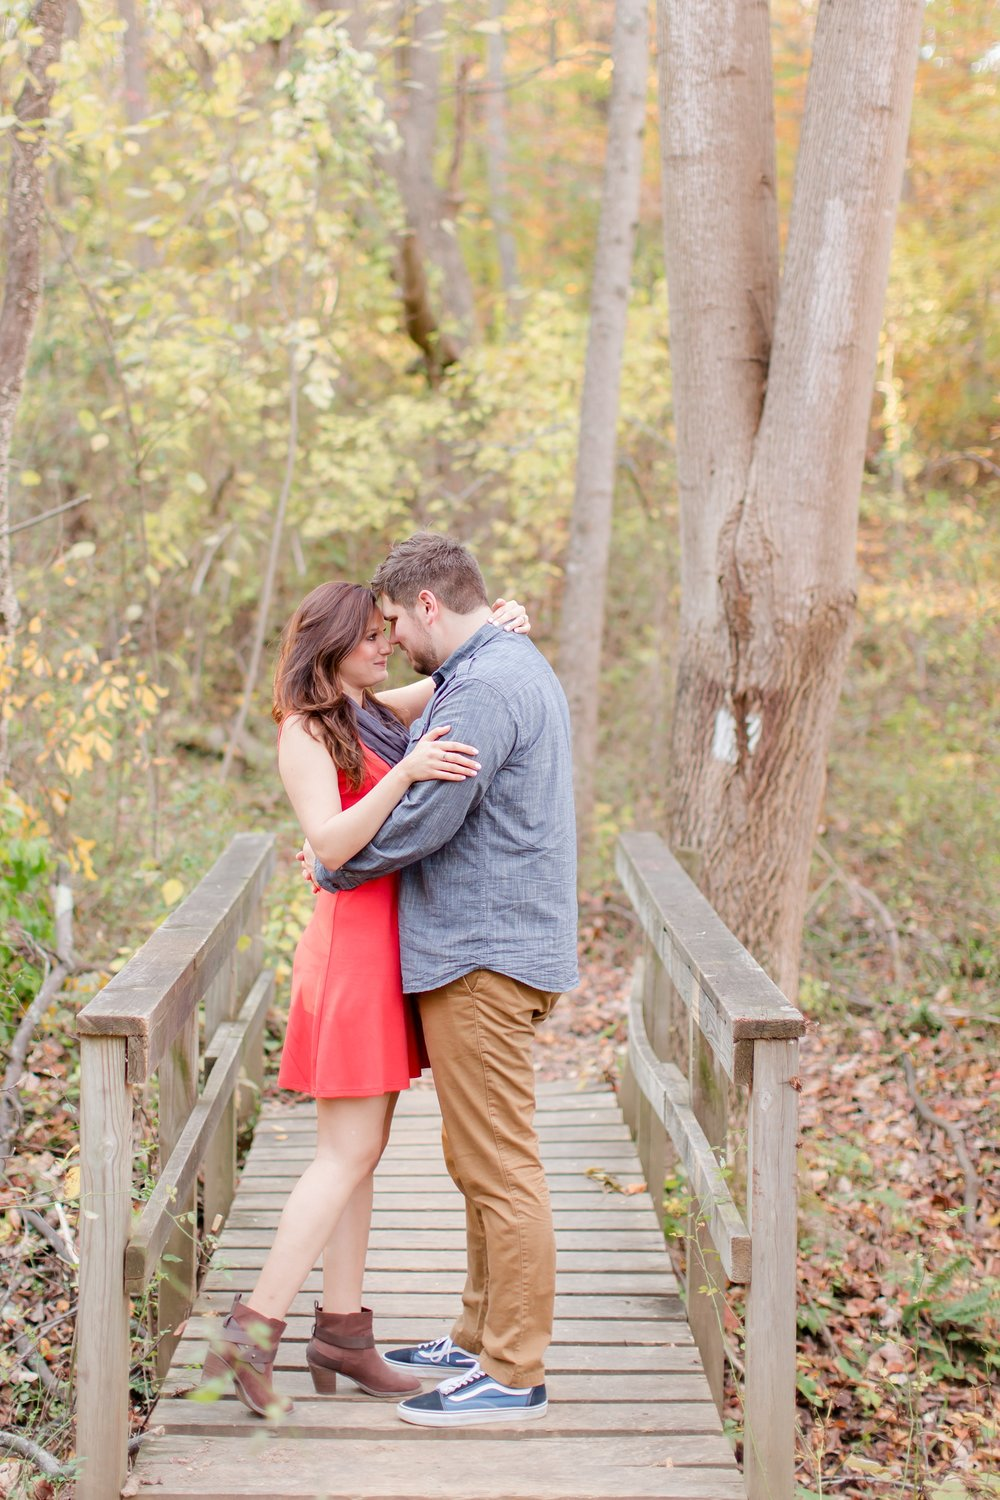 Rebecca & Greg Engagement-82_anna grace photography baltimore maryland engagement photographer jerusalem mill engagementphoto.jpg